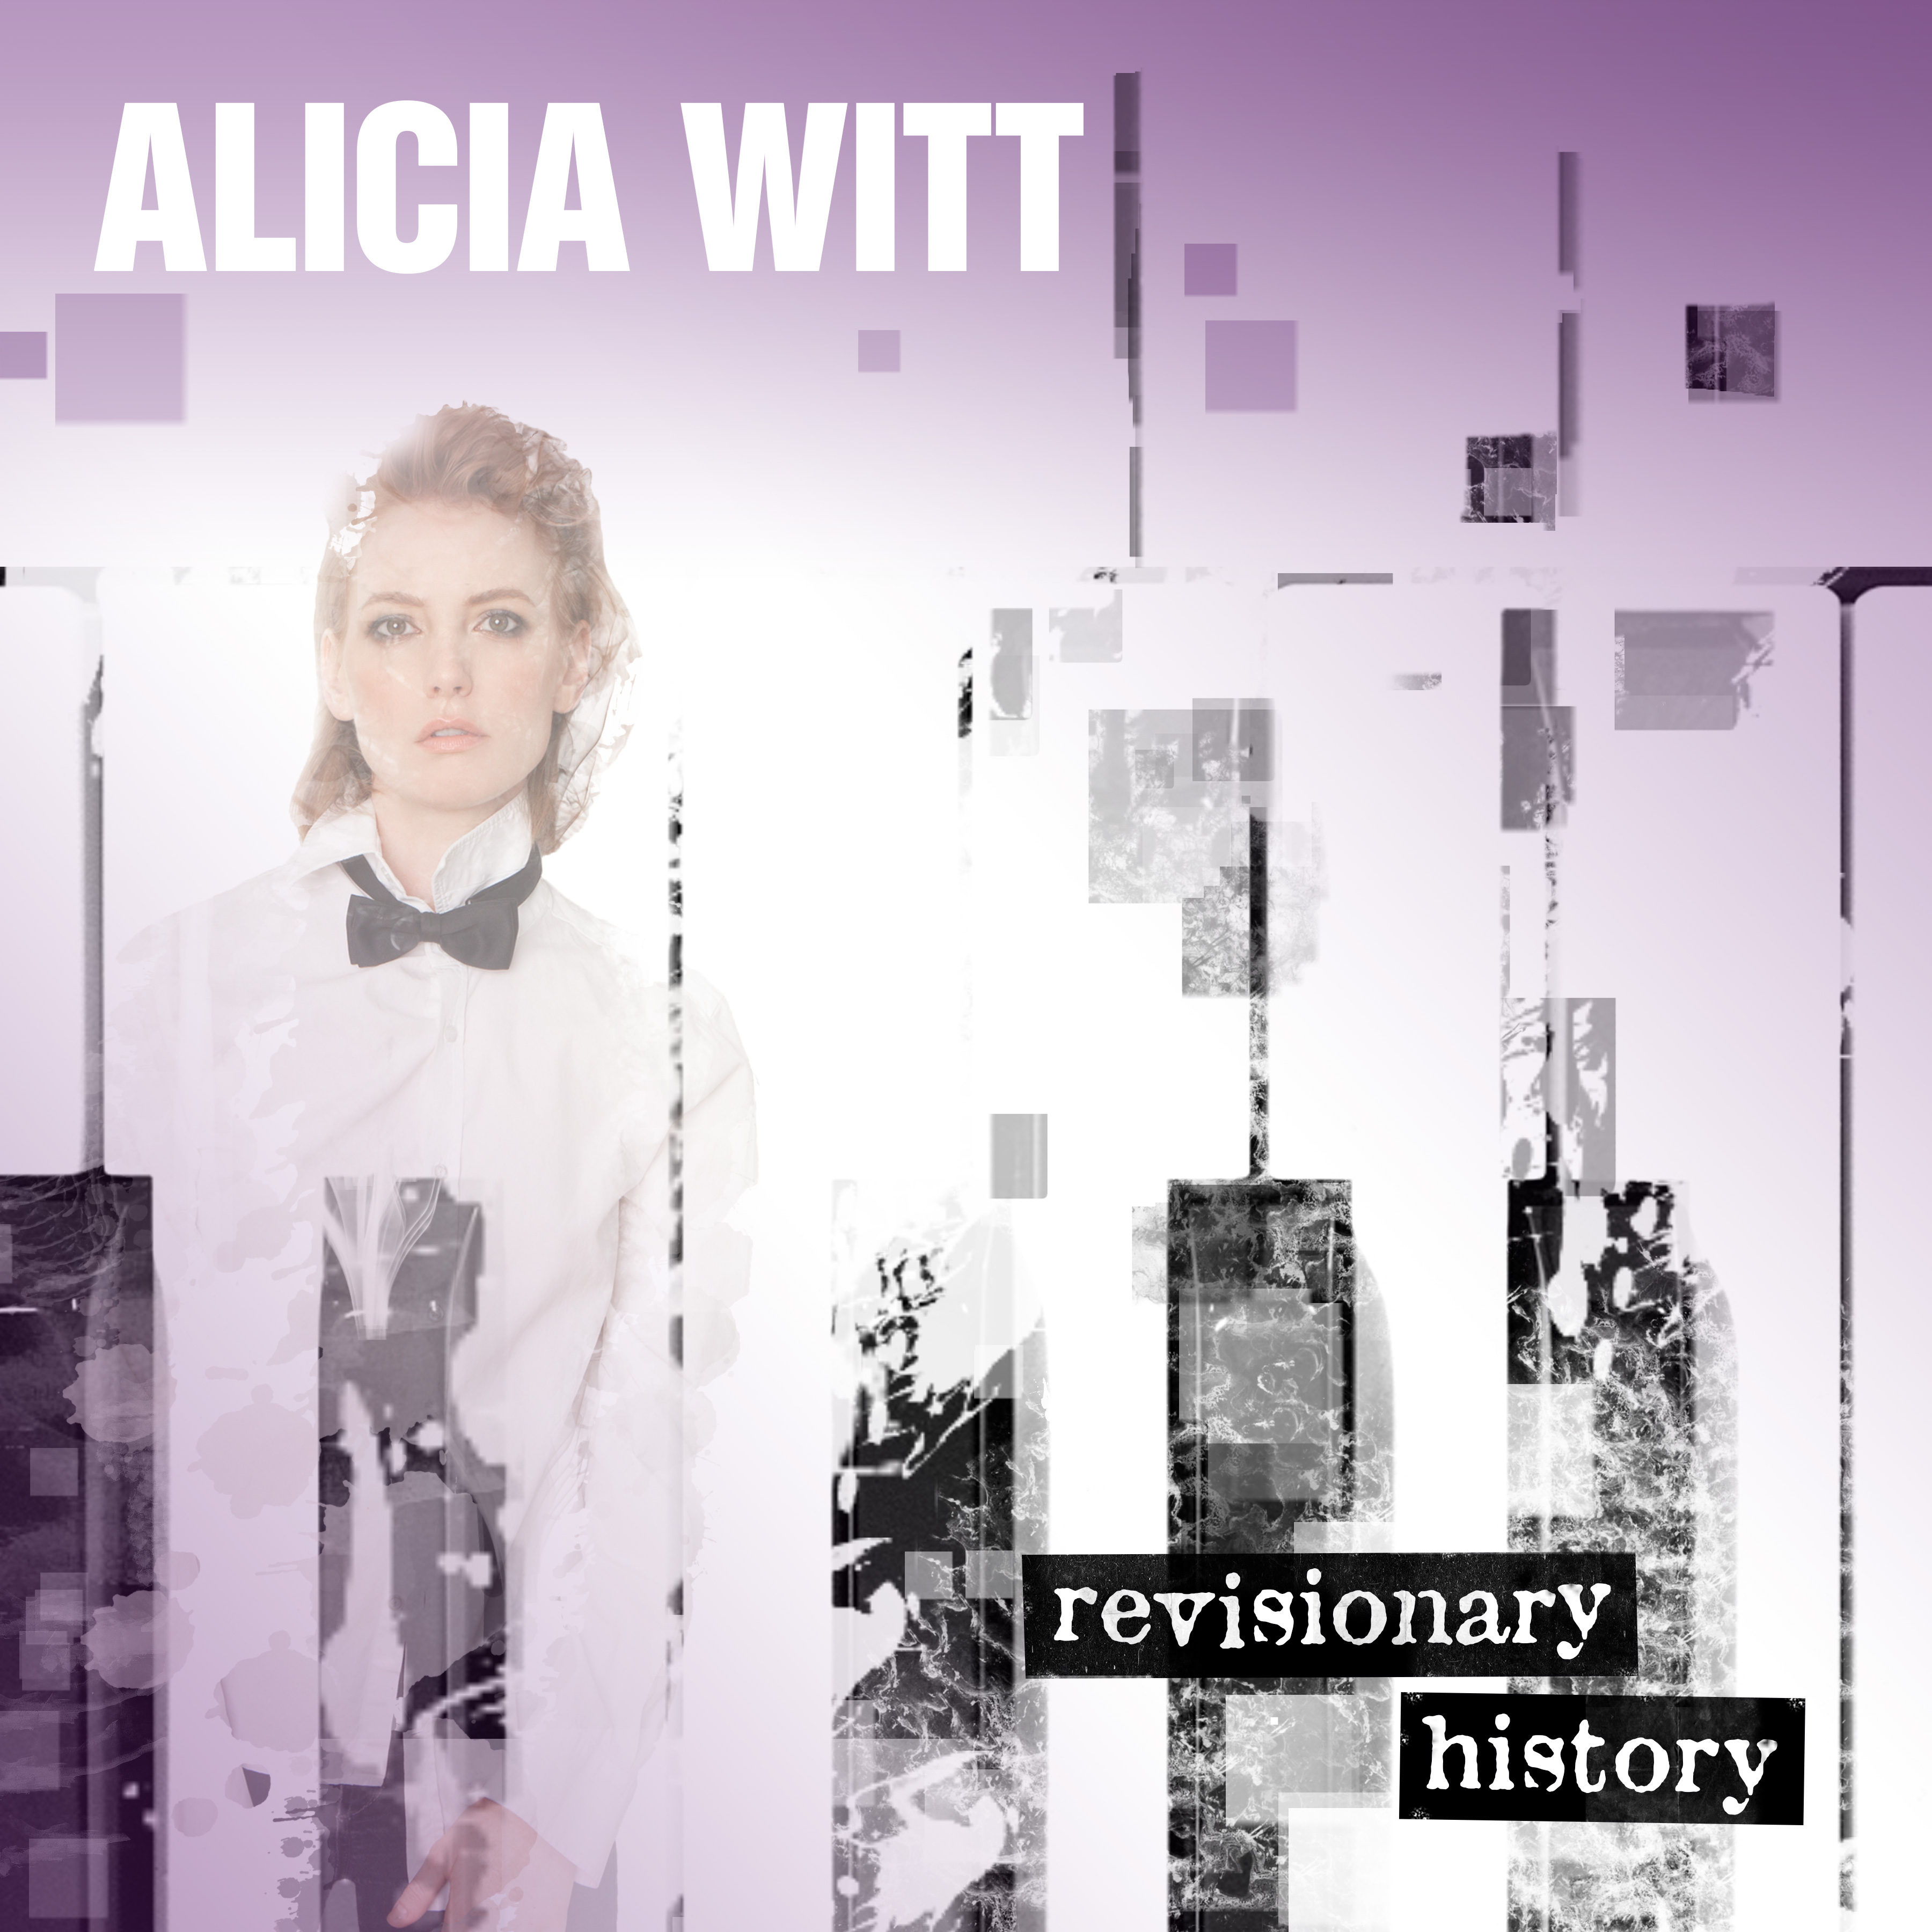 Alicia Witt - Revisionary Hero album art